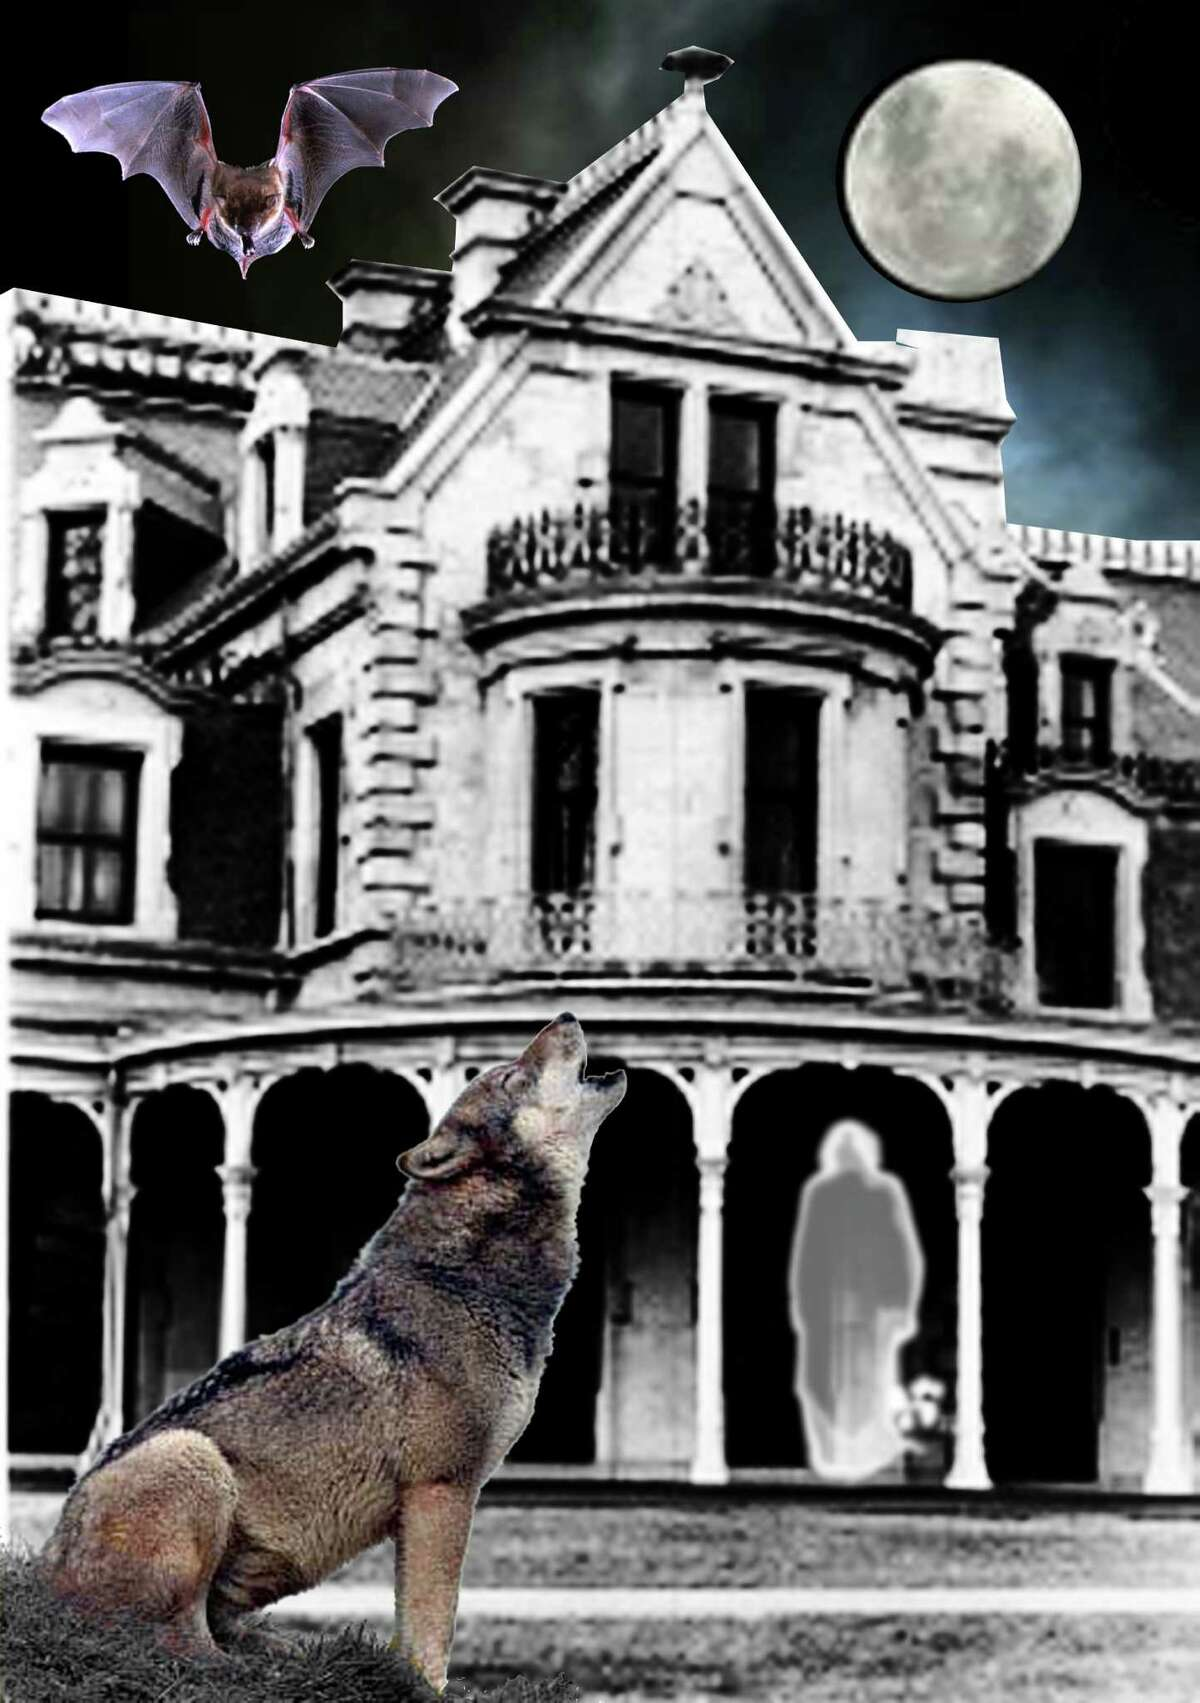 The Lockwood-Mathews Mansion Museum in Norwalk will host a Halloween costume party on Oct. 27.